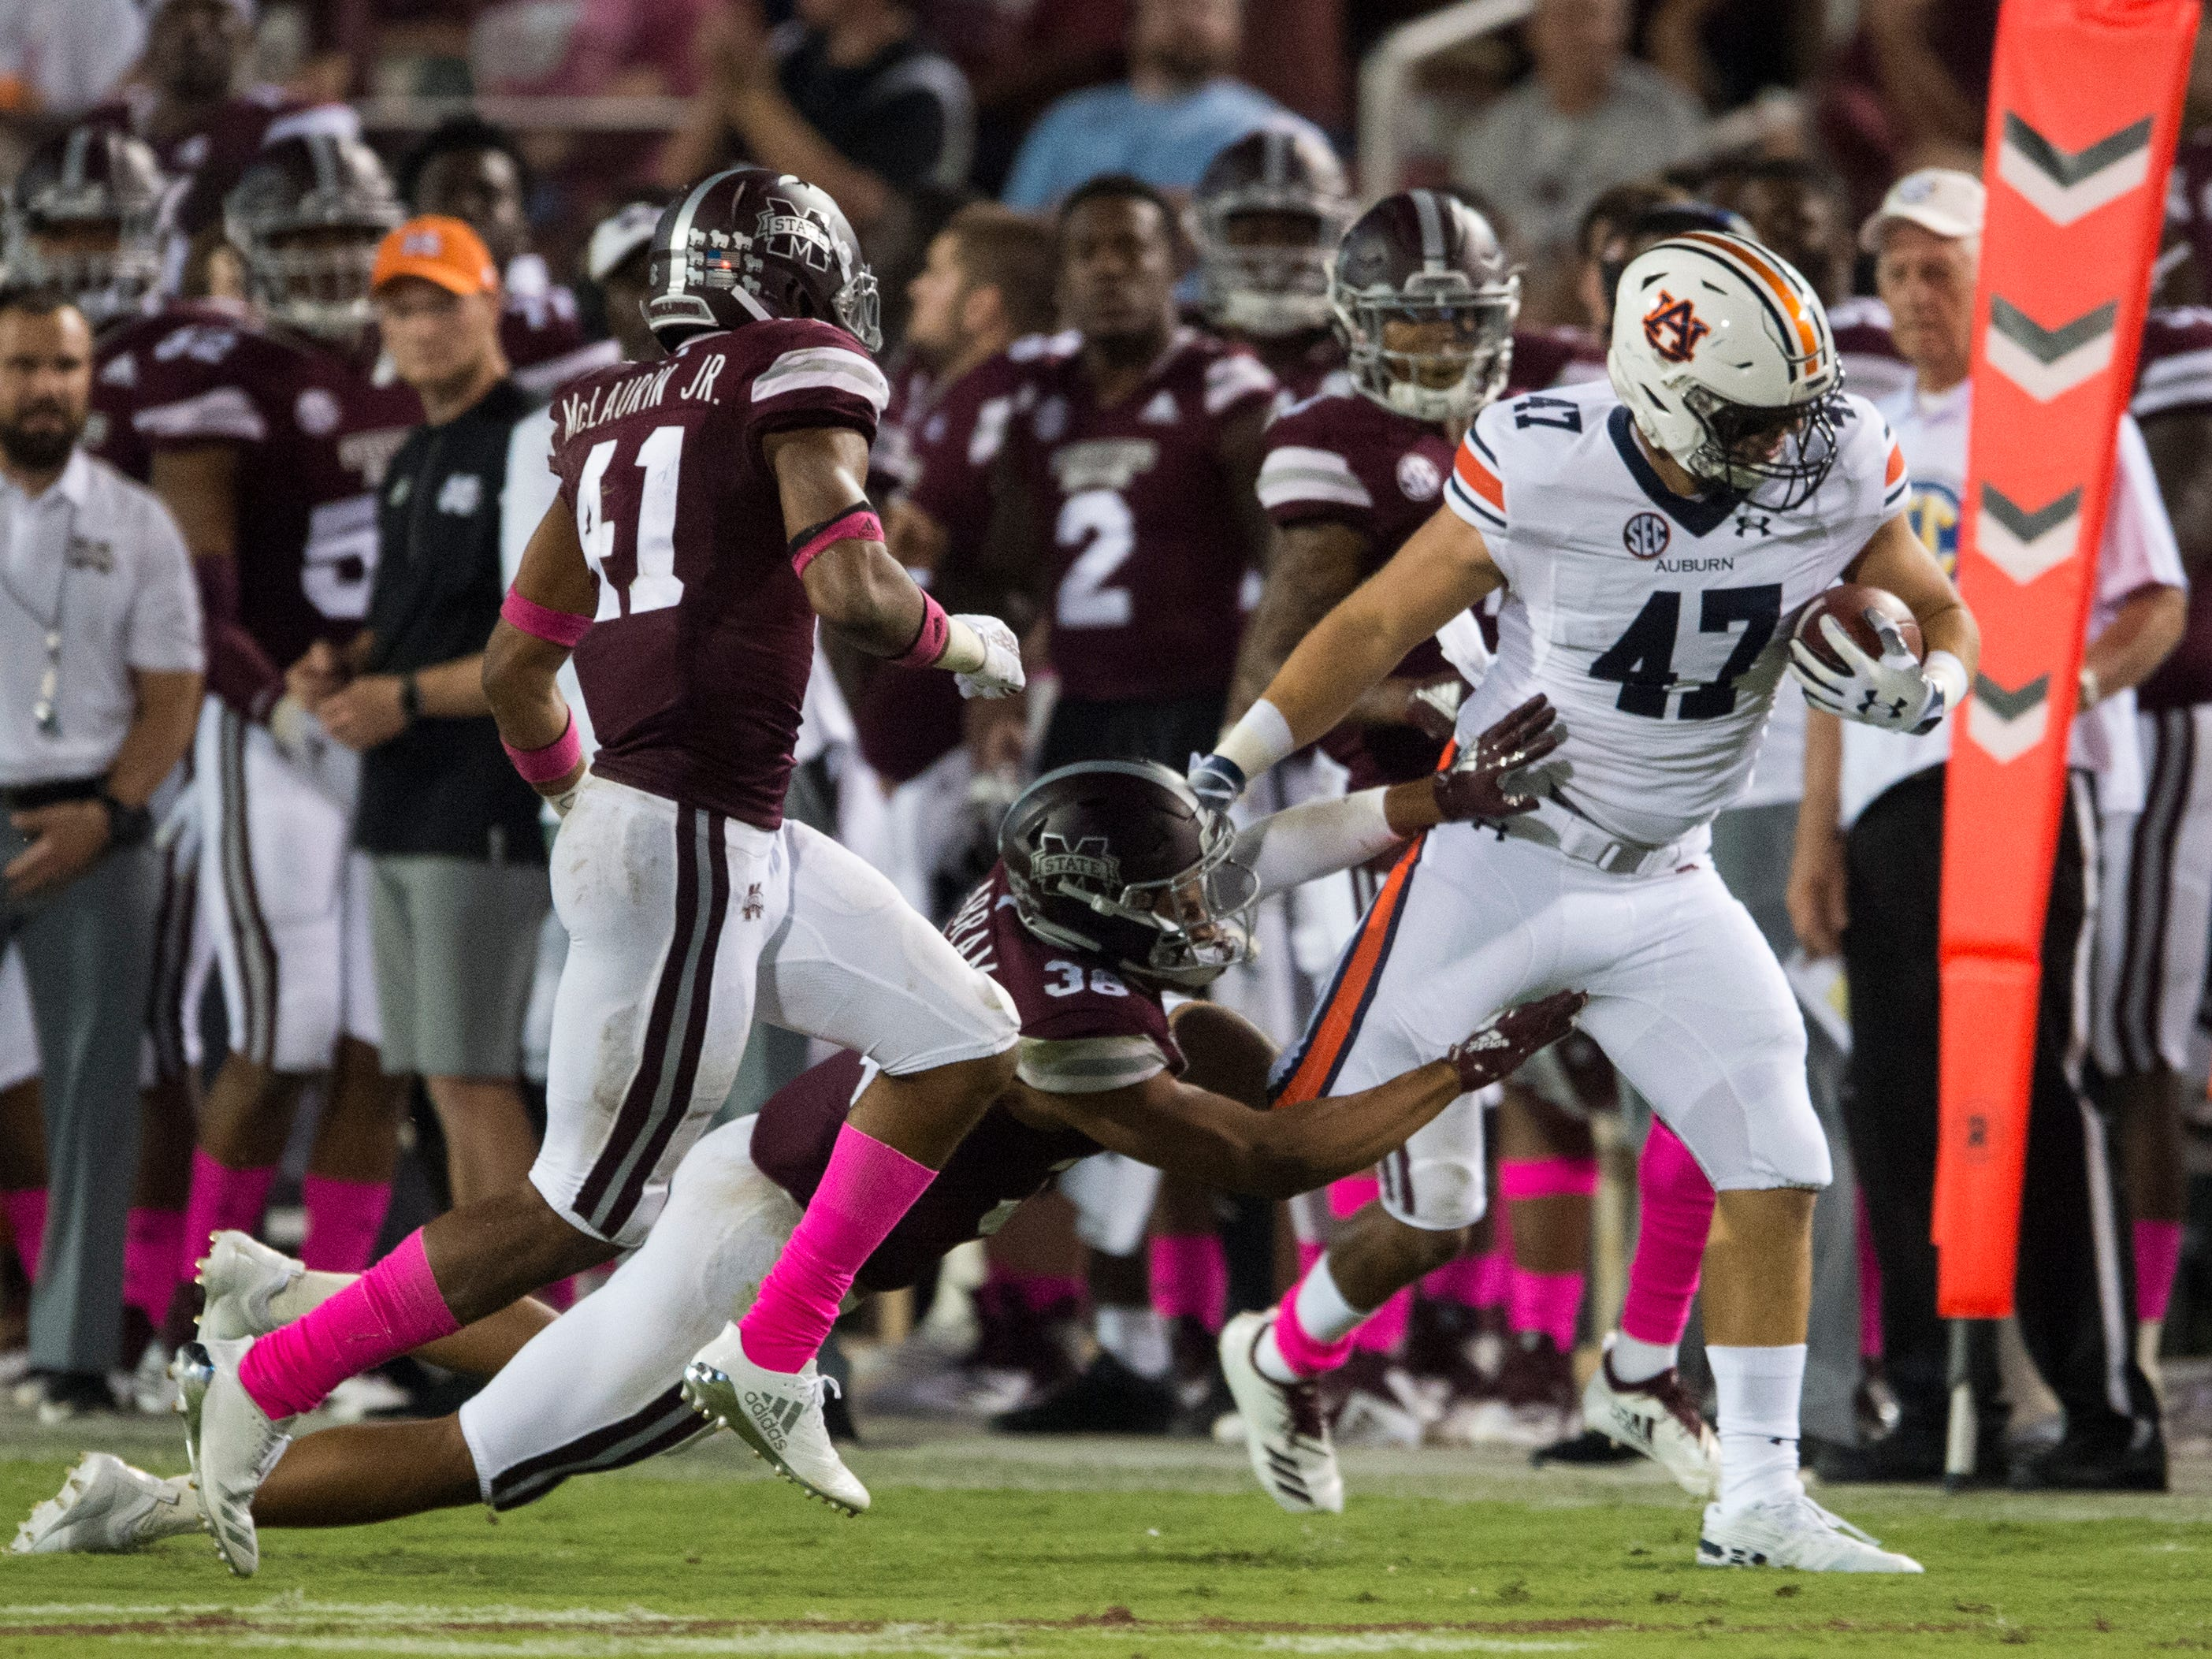 Auburn's John Samuel Shenker (47) is pushed out of bounds by Mississippi State's Johnathan Abram (38) at Davis Wade Stadium in Starkville, Miss., on Saturday, Oct. 6, 2018. Mississippi State defeated Auburn 23-9.